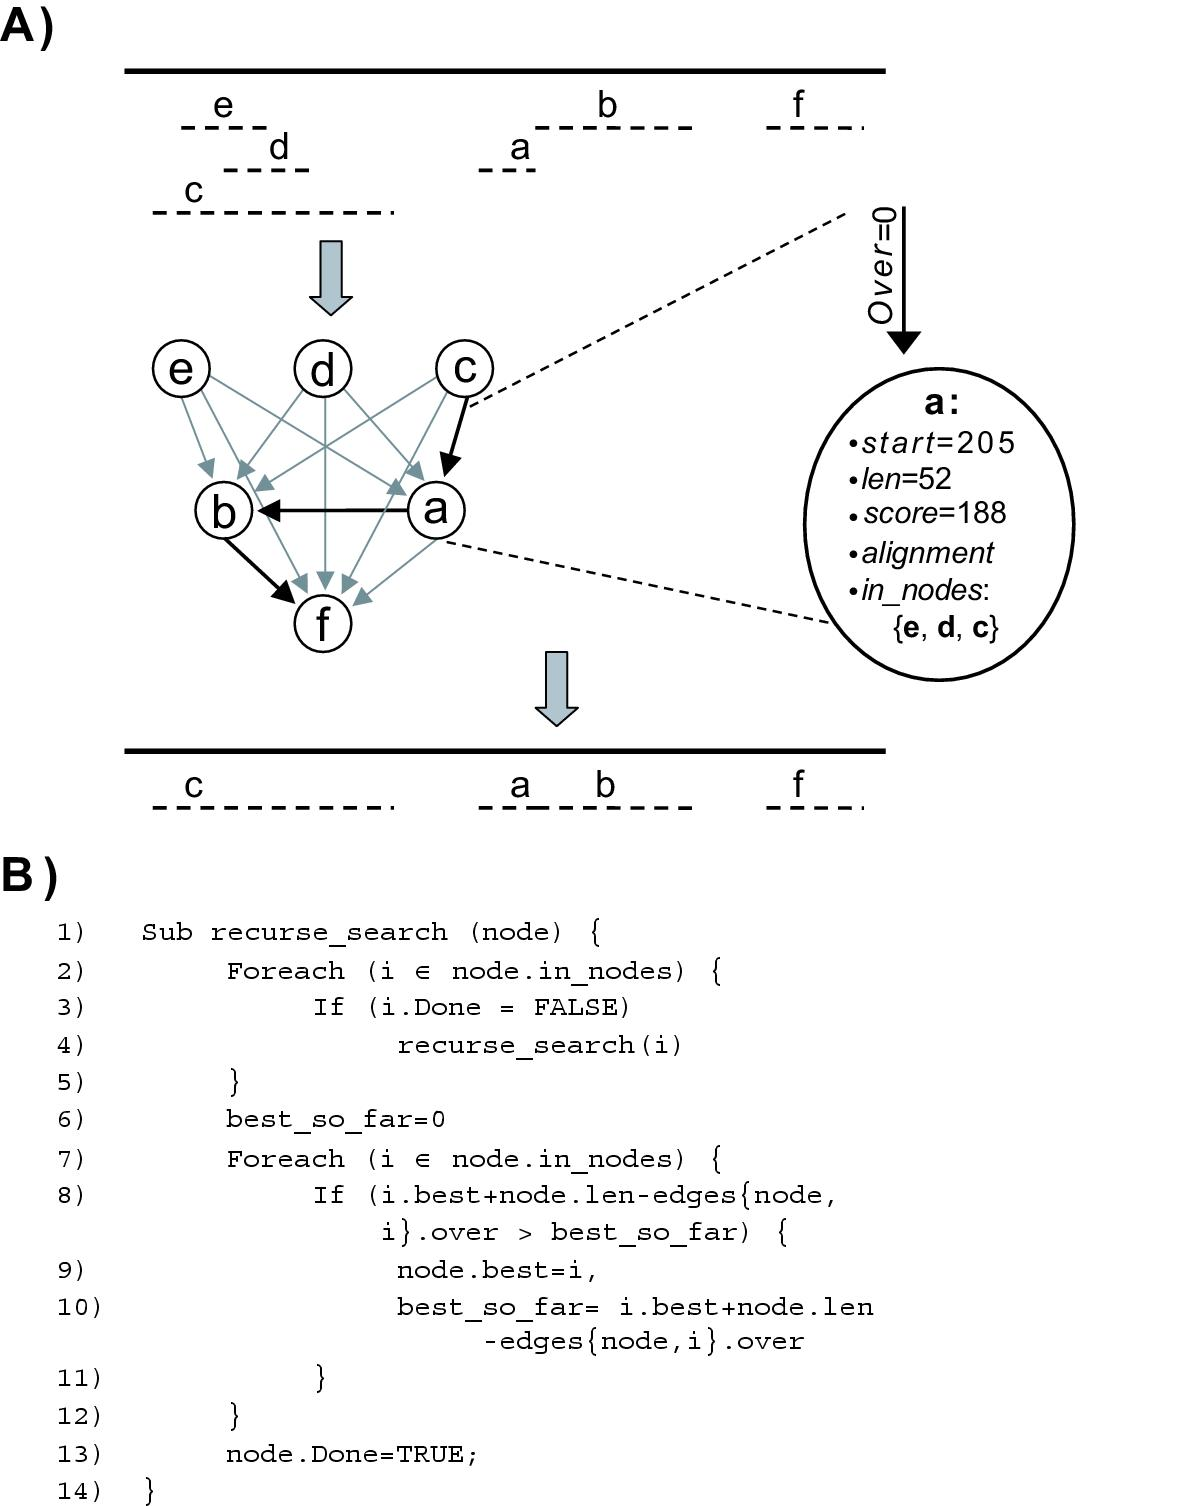 https://static-content.springer.com/image/art%3A10.1186%2F1471-2105-5-62/MediaObjects/12859_2003_Article_178_Fig1_HTML.jpg